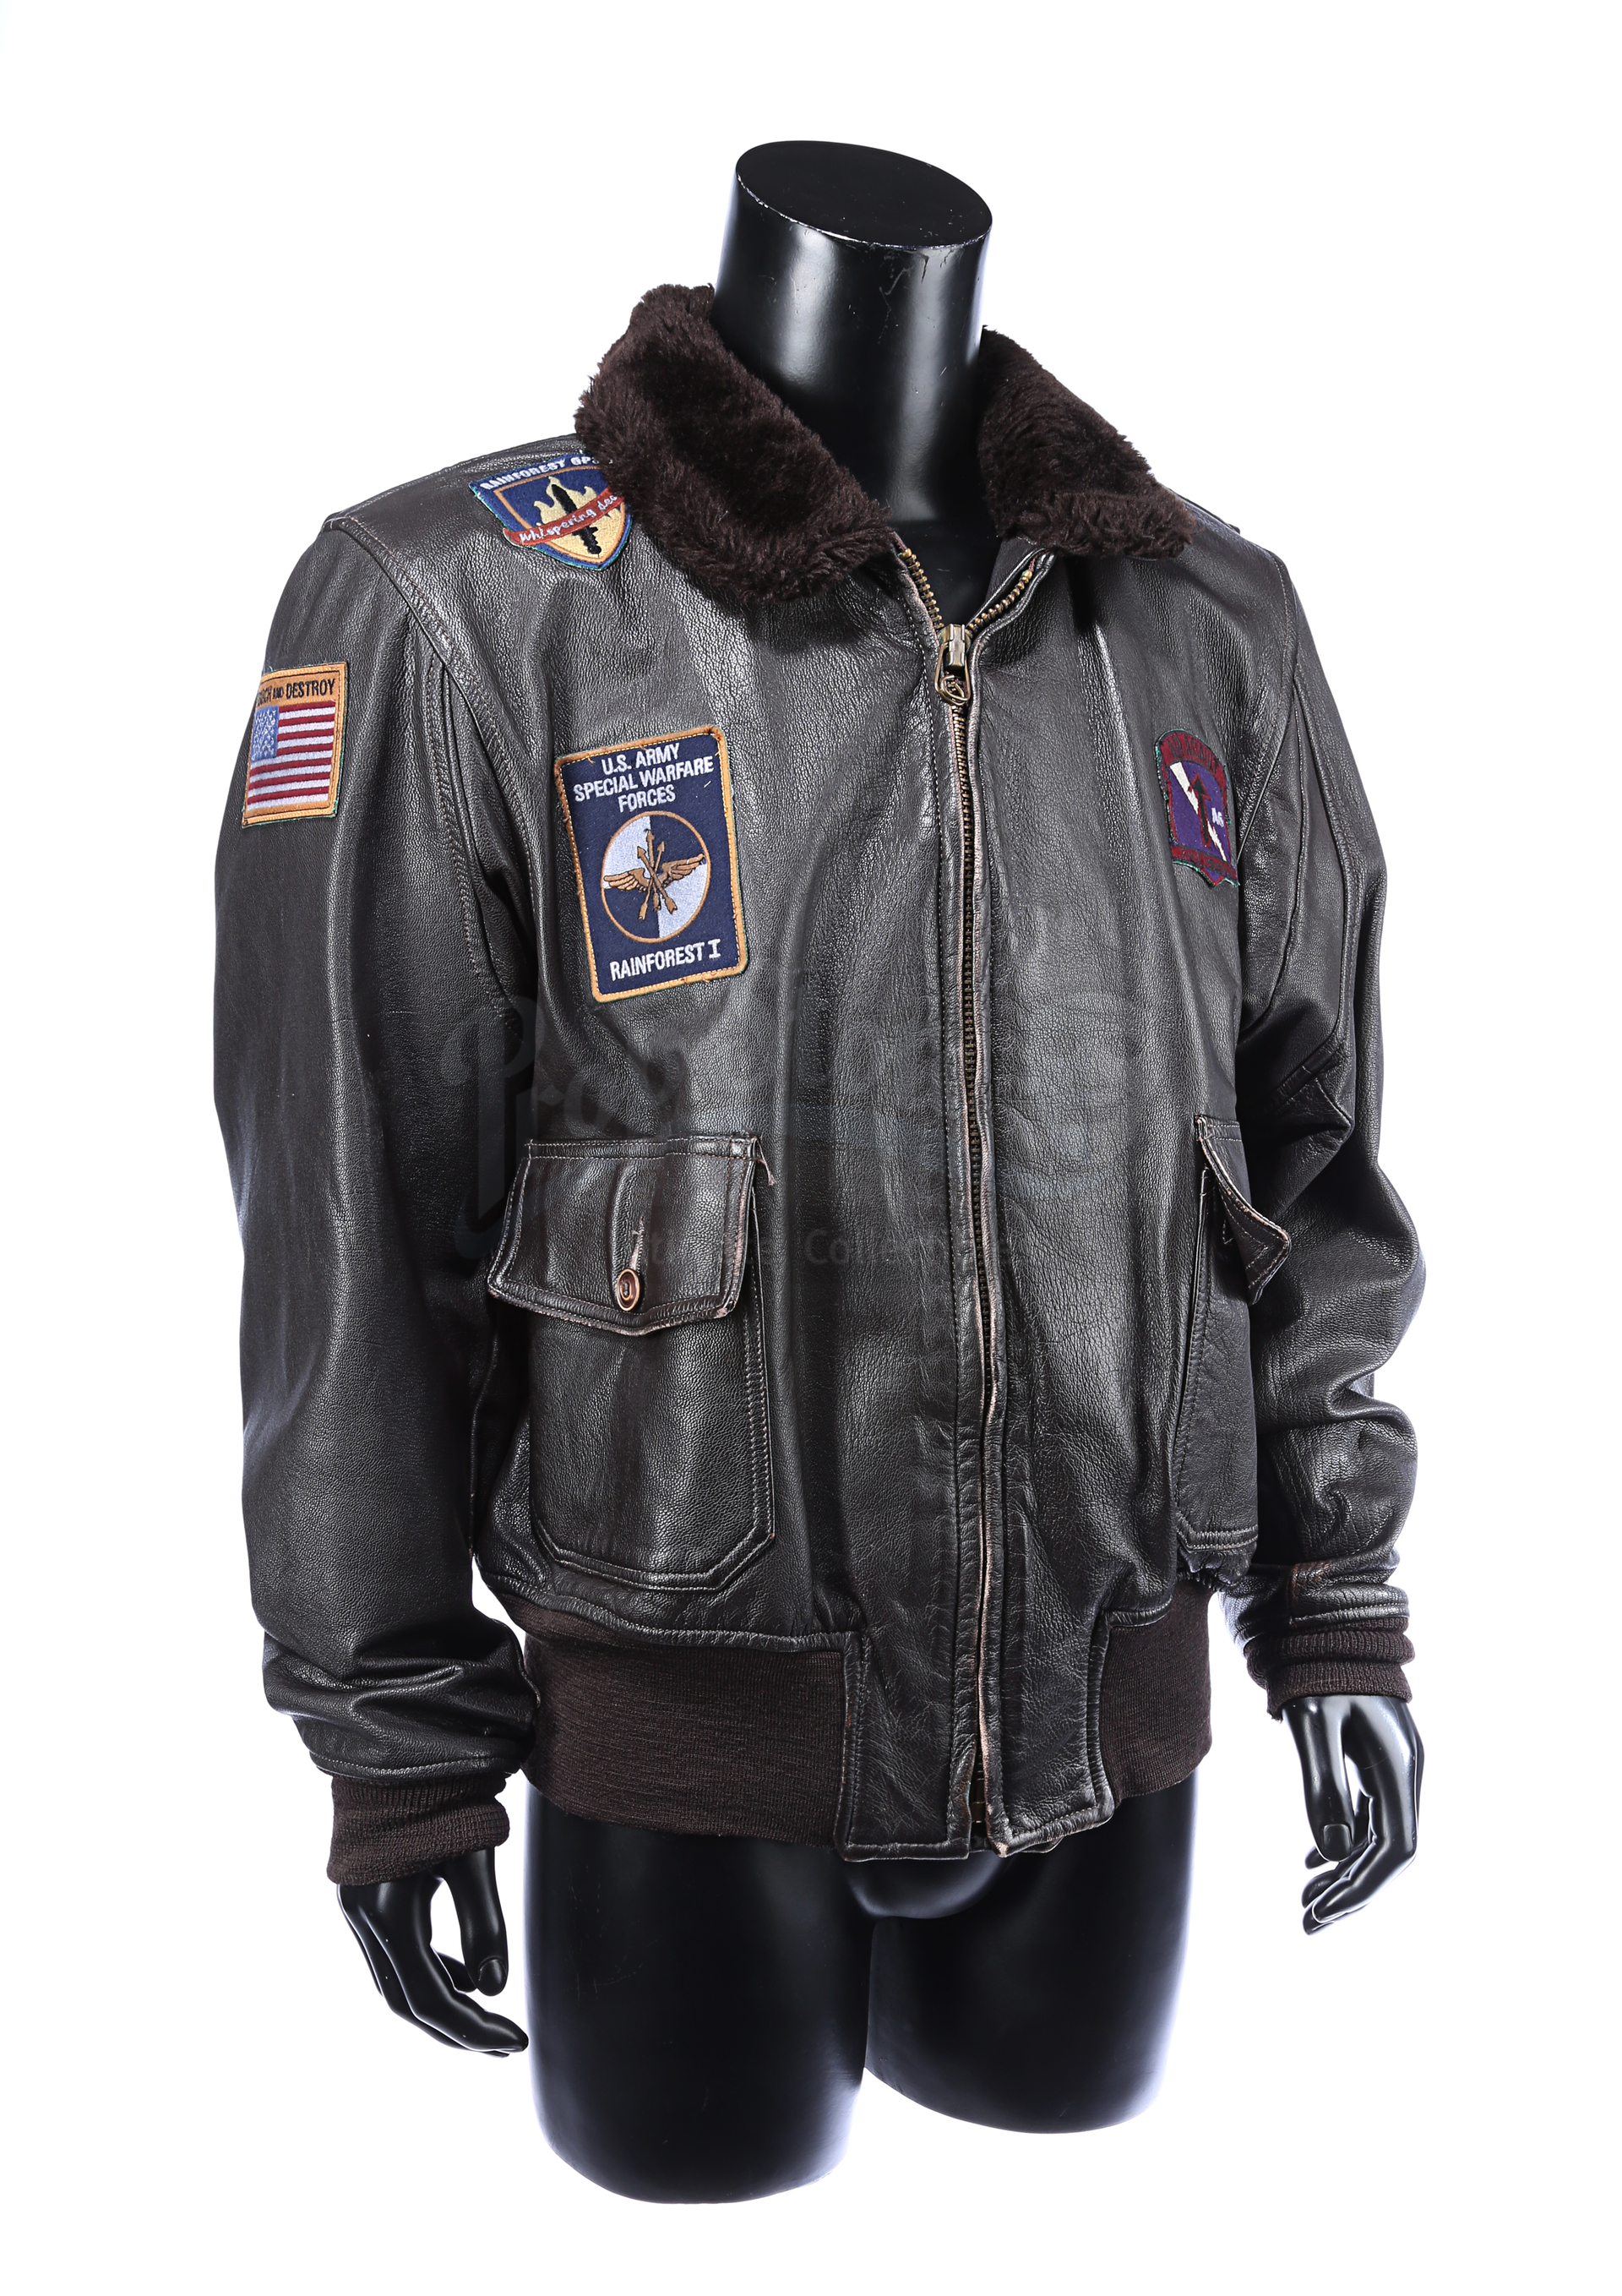 THE 6TH DAY (2000) - Adam Gibson's (Arnold Schwarzenegger) Leather Jacket - Image 3 of 15